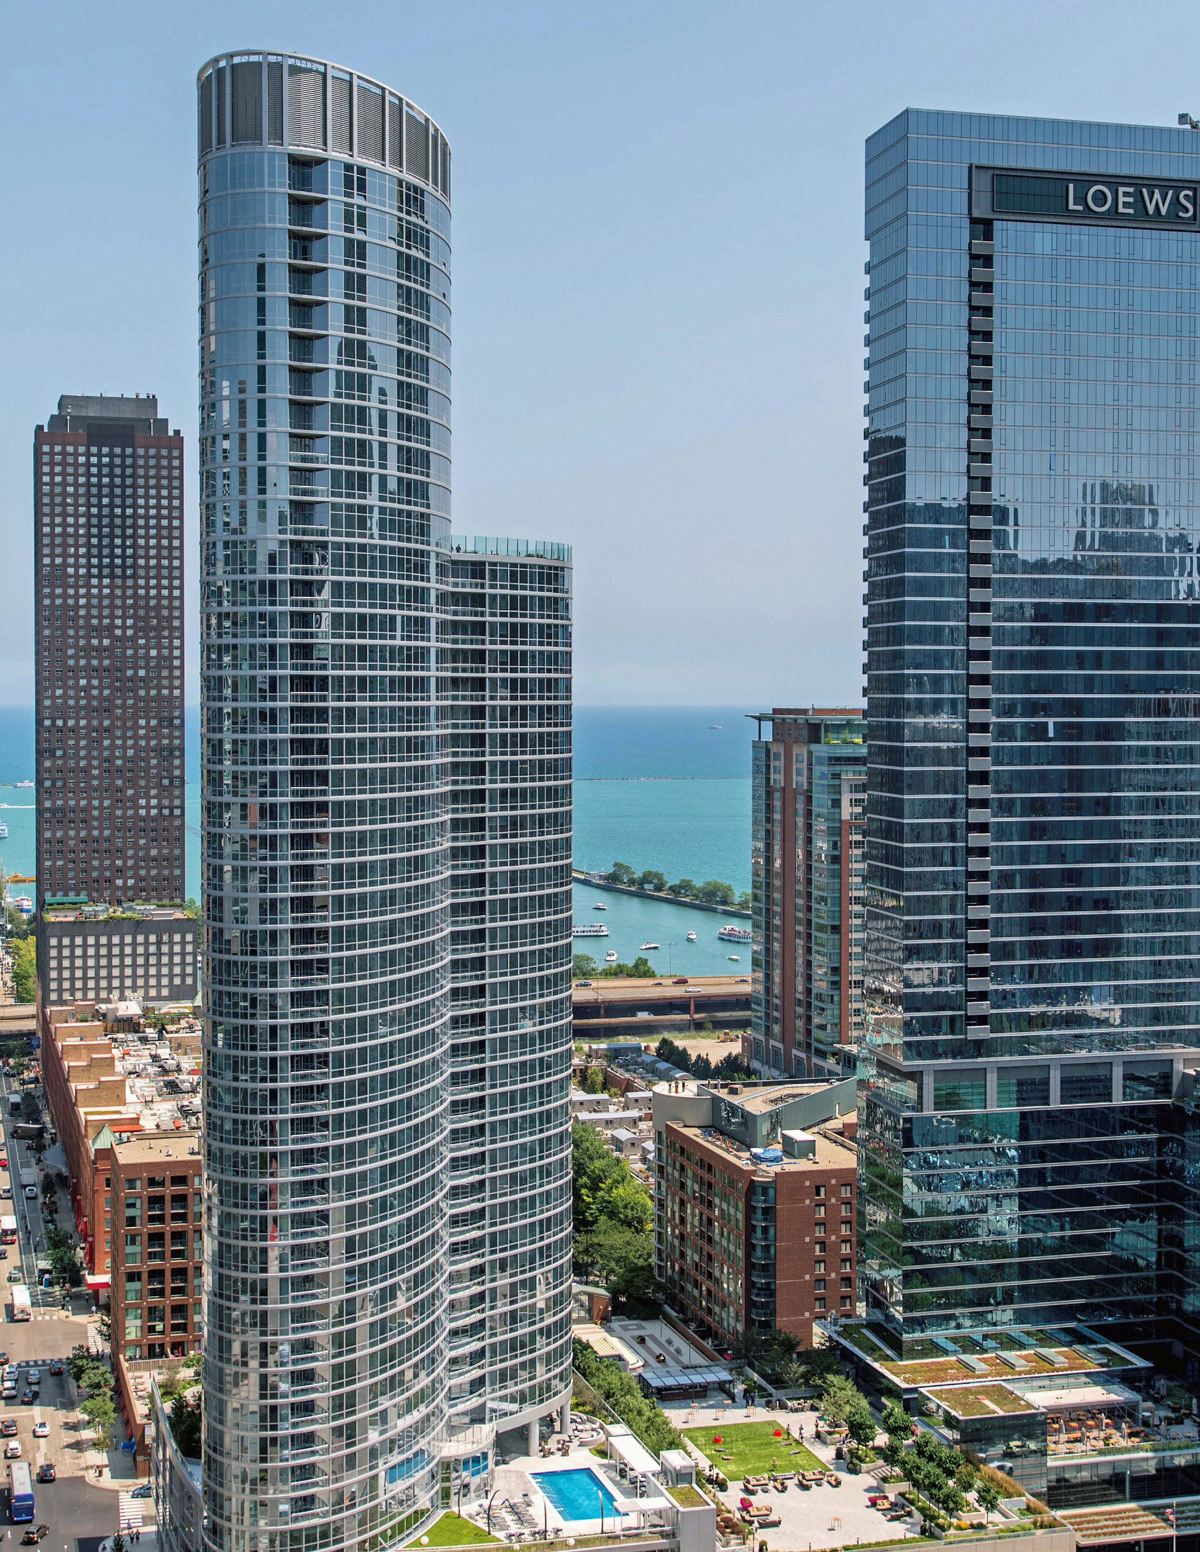 465 NORTH PARK DRIVE, Chicago | Sowlat